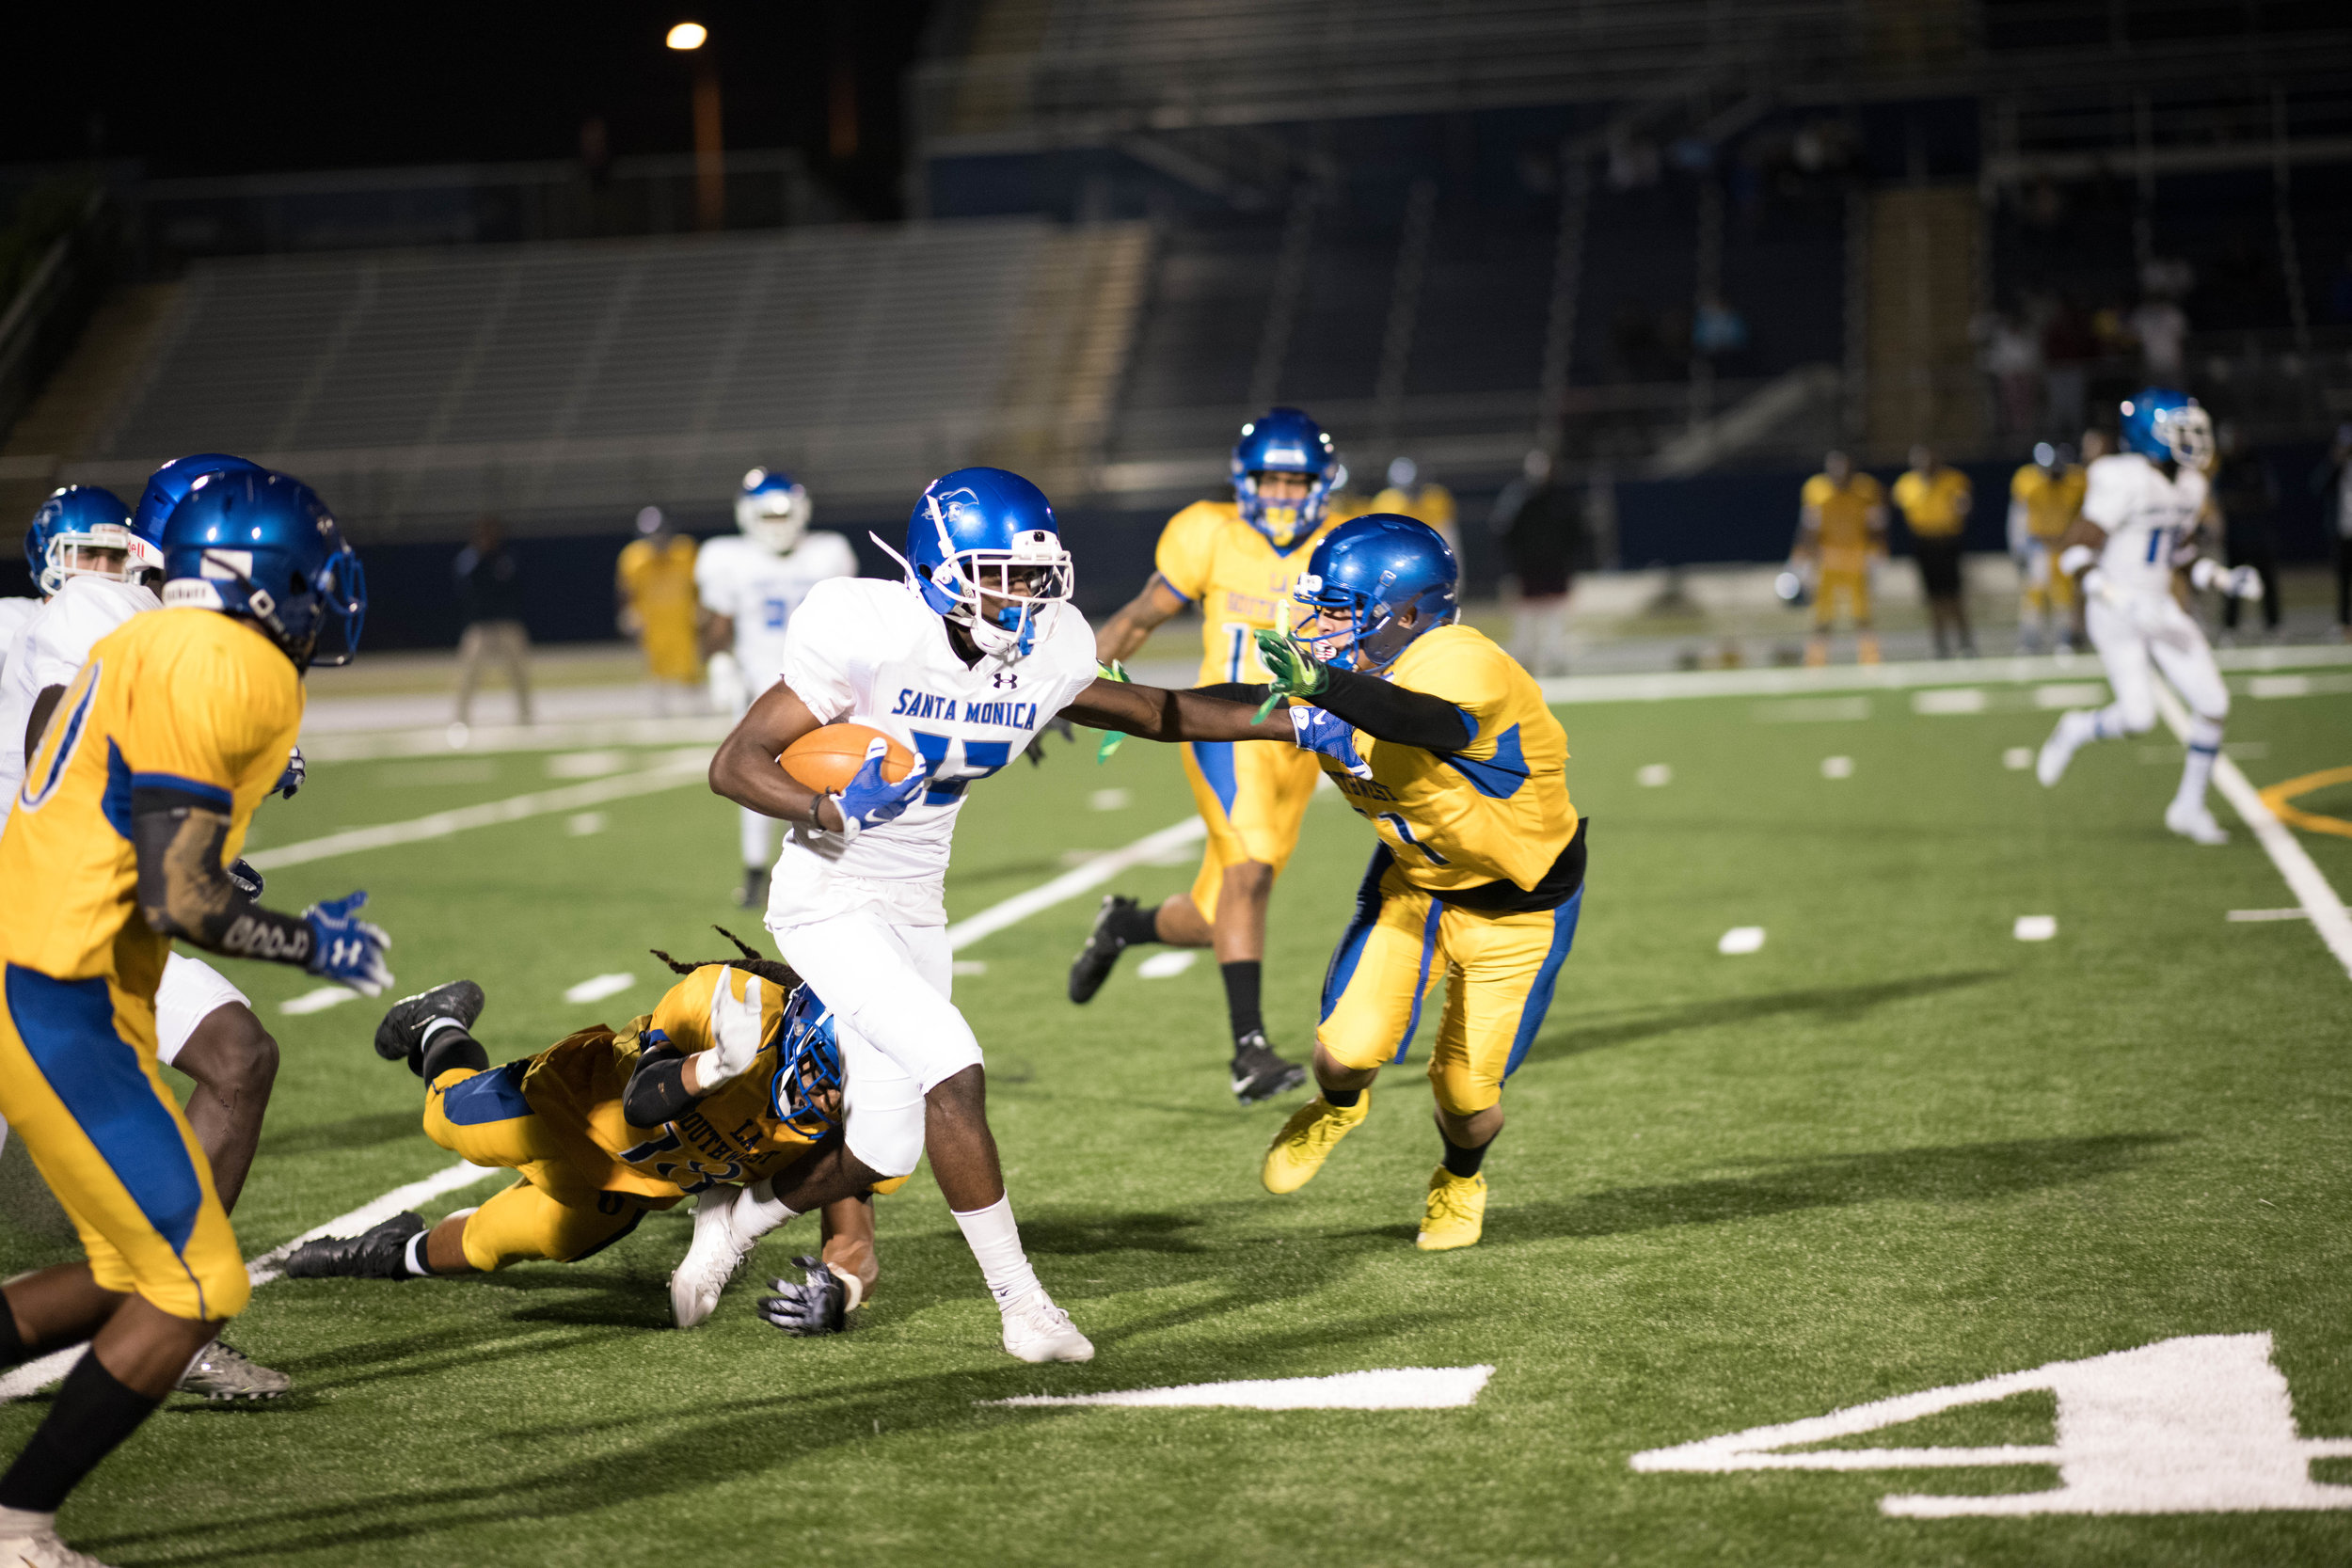 #13 Tariq Brown fights off Southwest defenders as he tries to gain yards.(Photo by Kevin Tidmore/The Corsair)